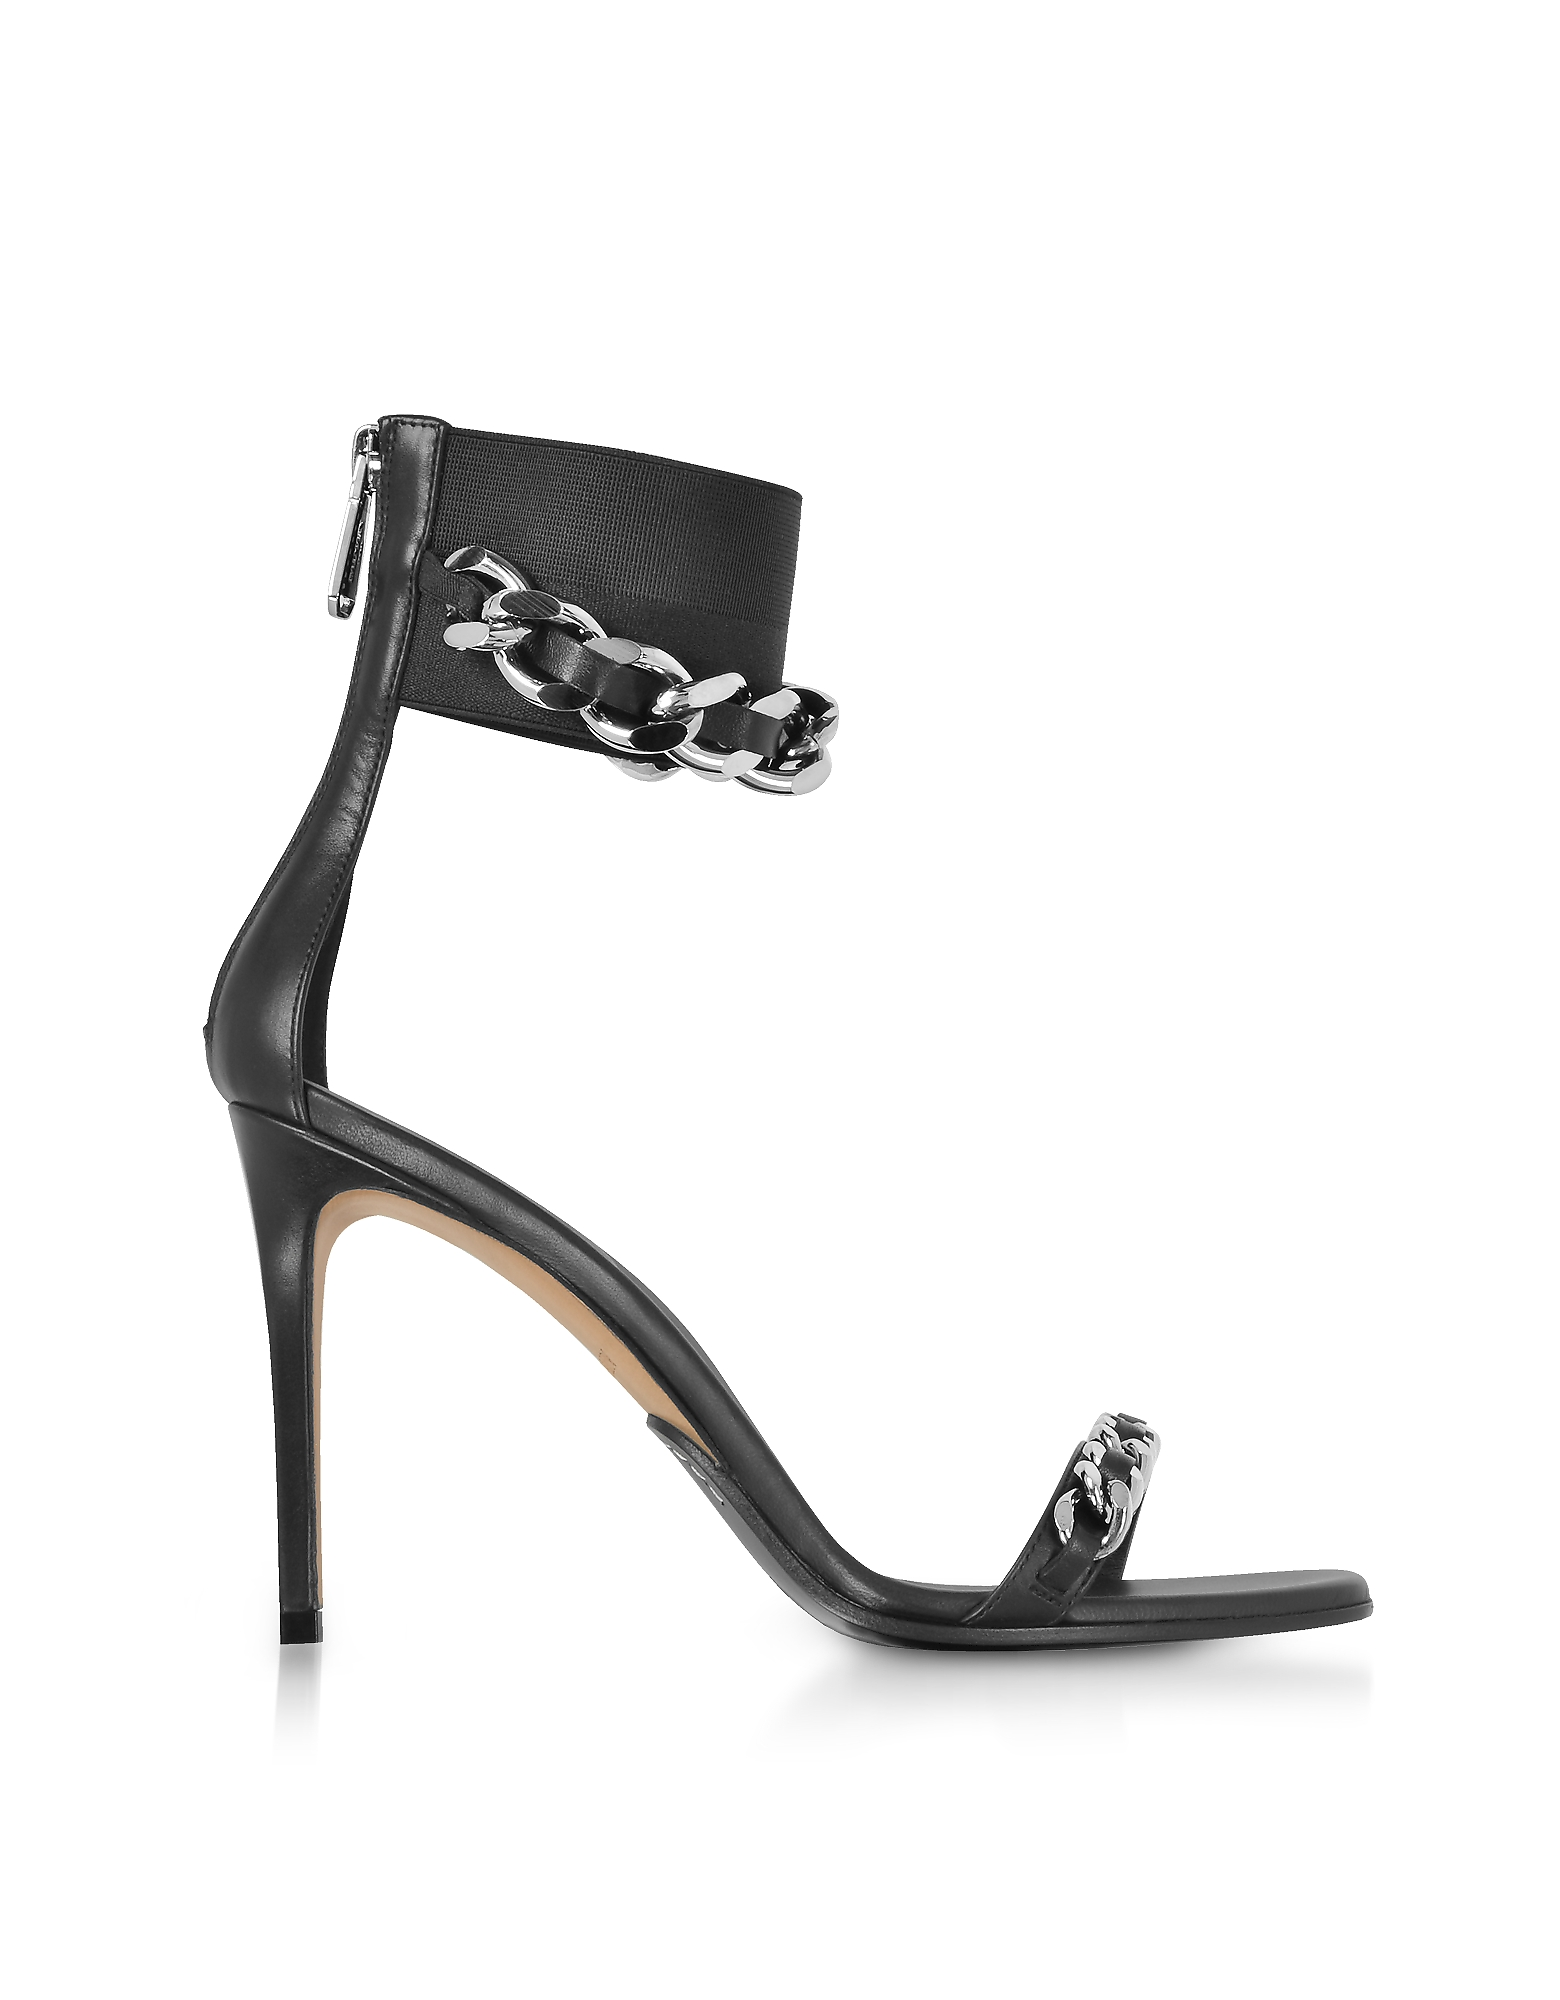 Balmain Shoes, Black Leather Duo Chain Sandals